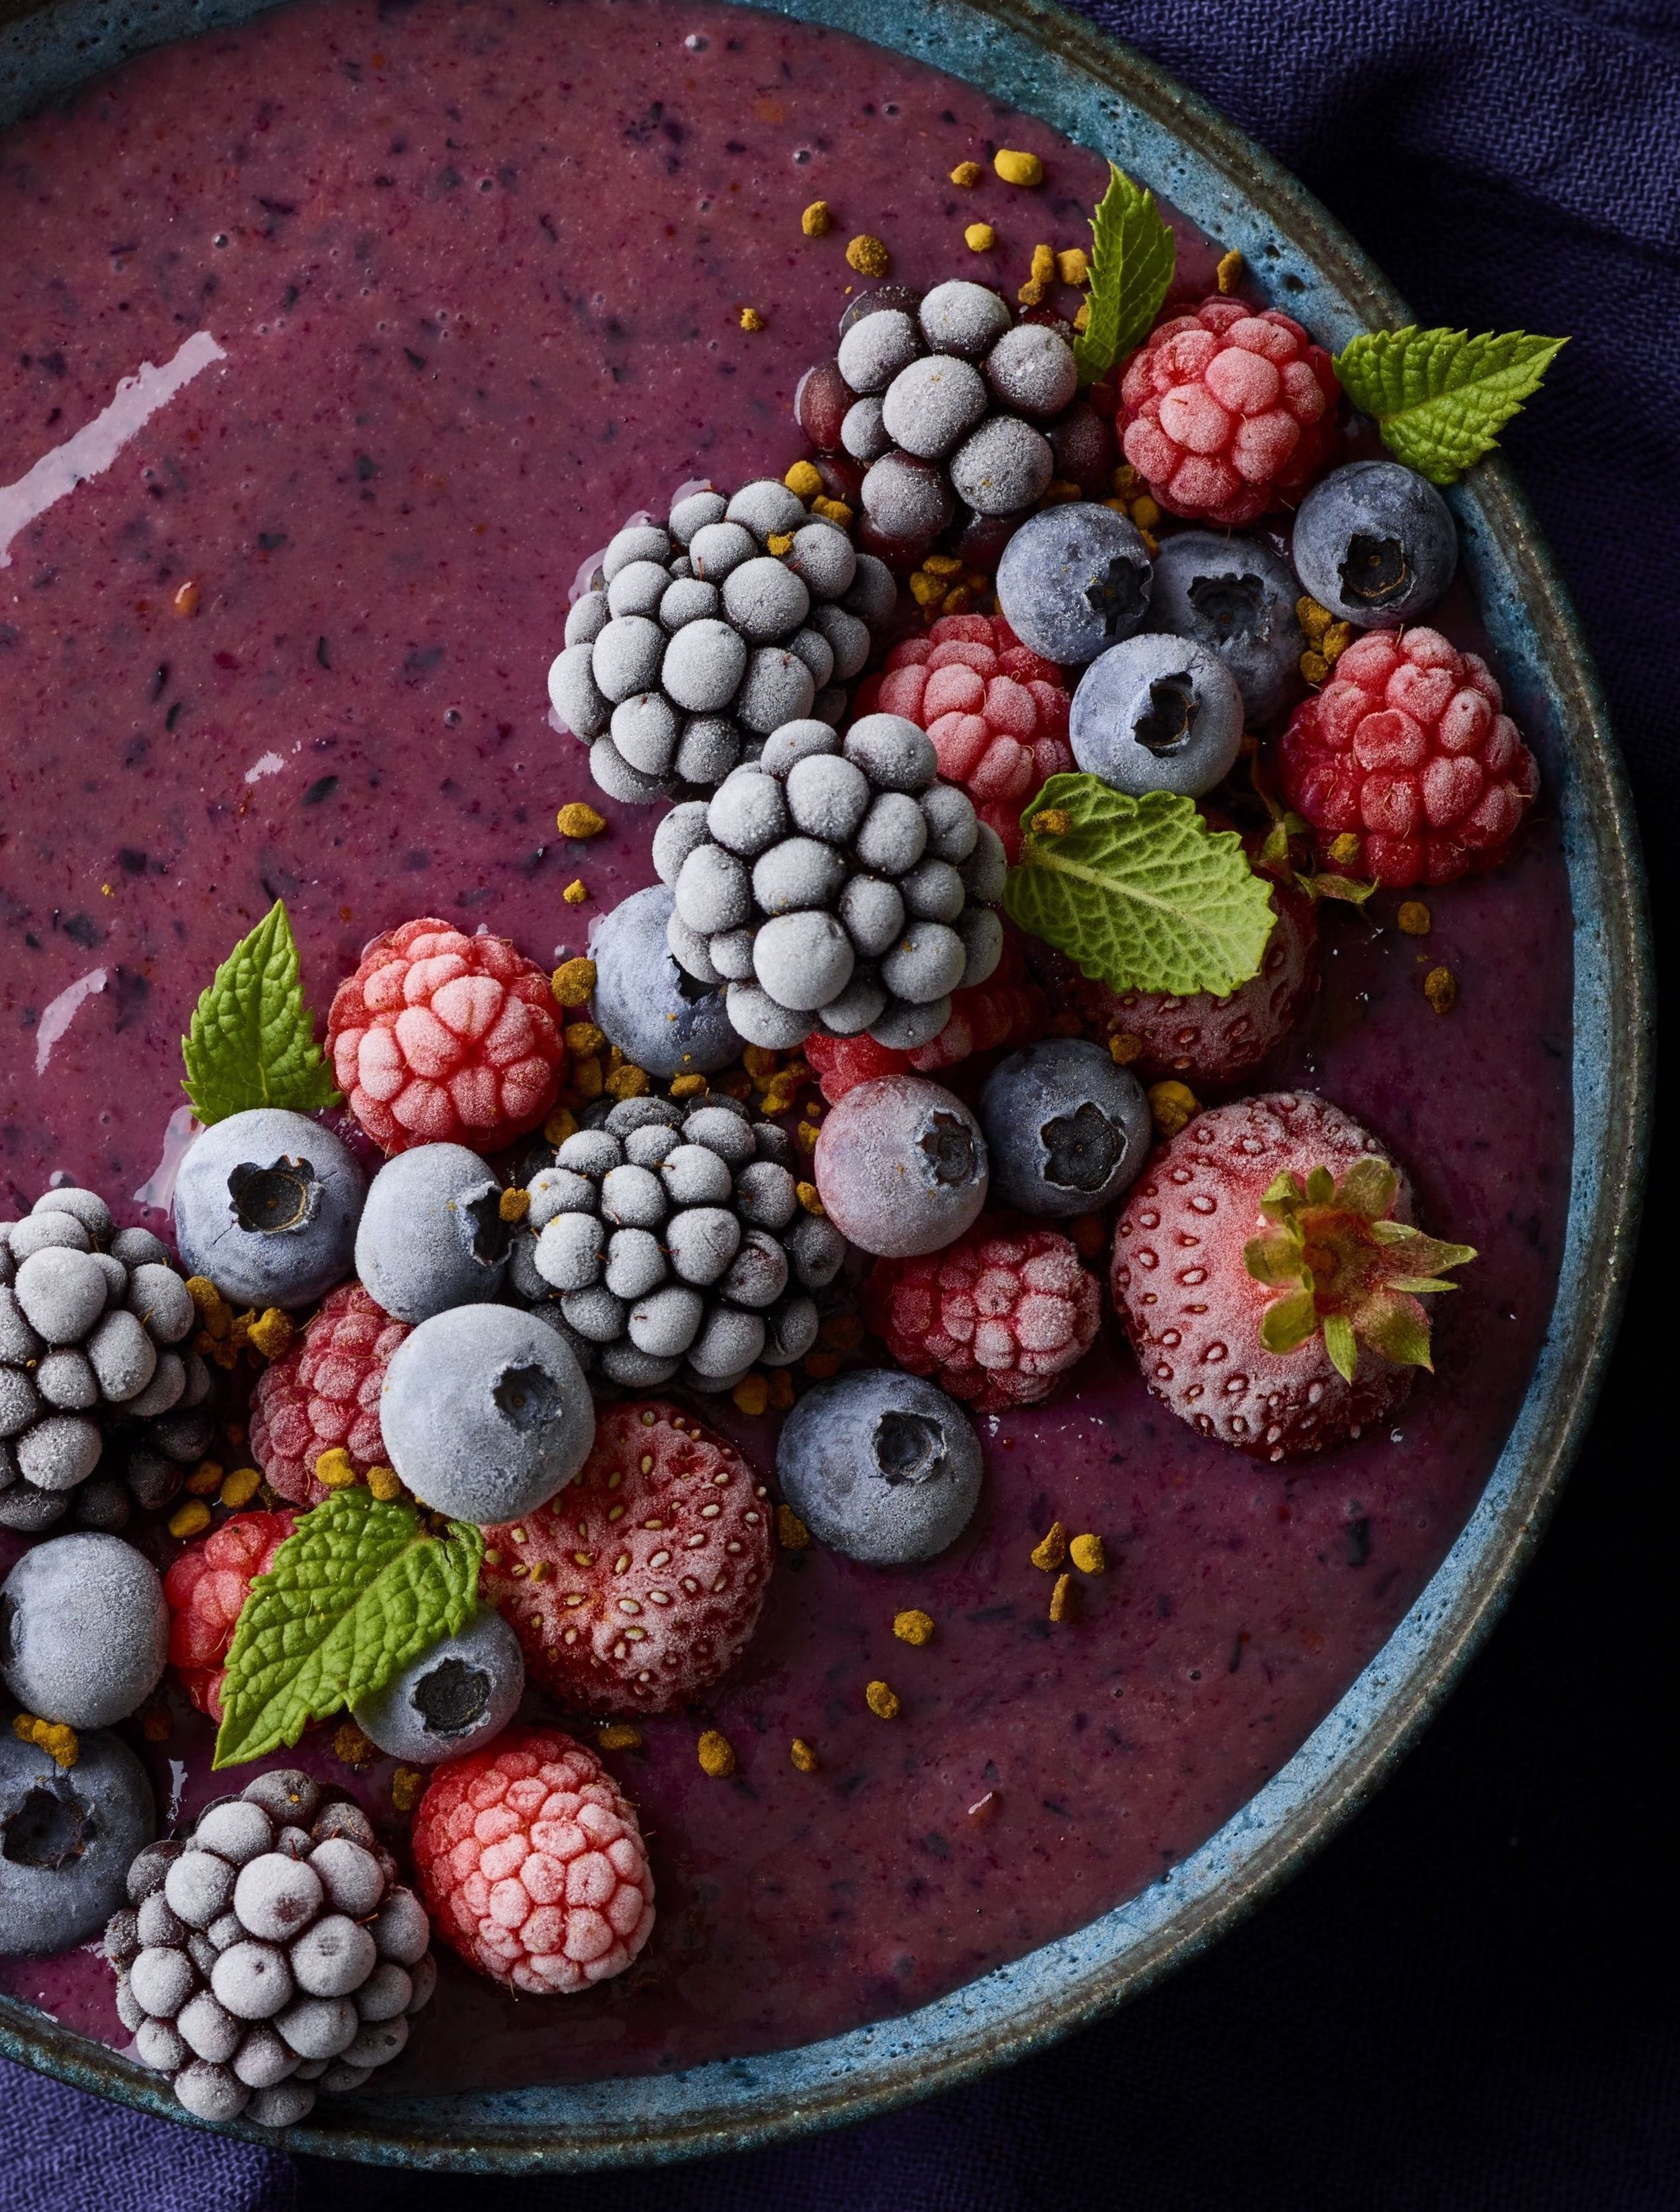 Test_FeliciaPerretti_SmoothieBowl_crop2.jpg